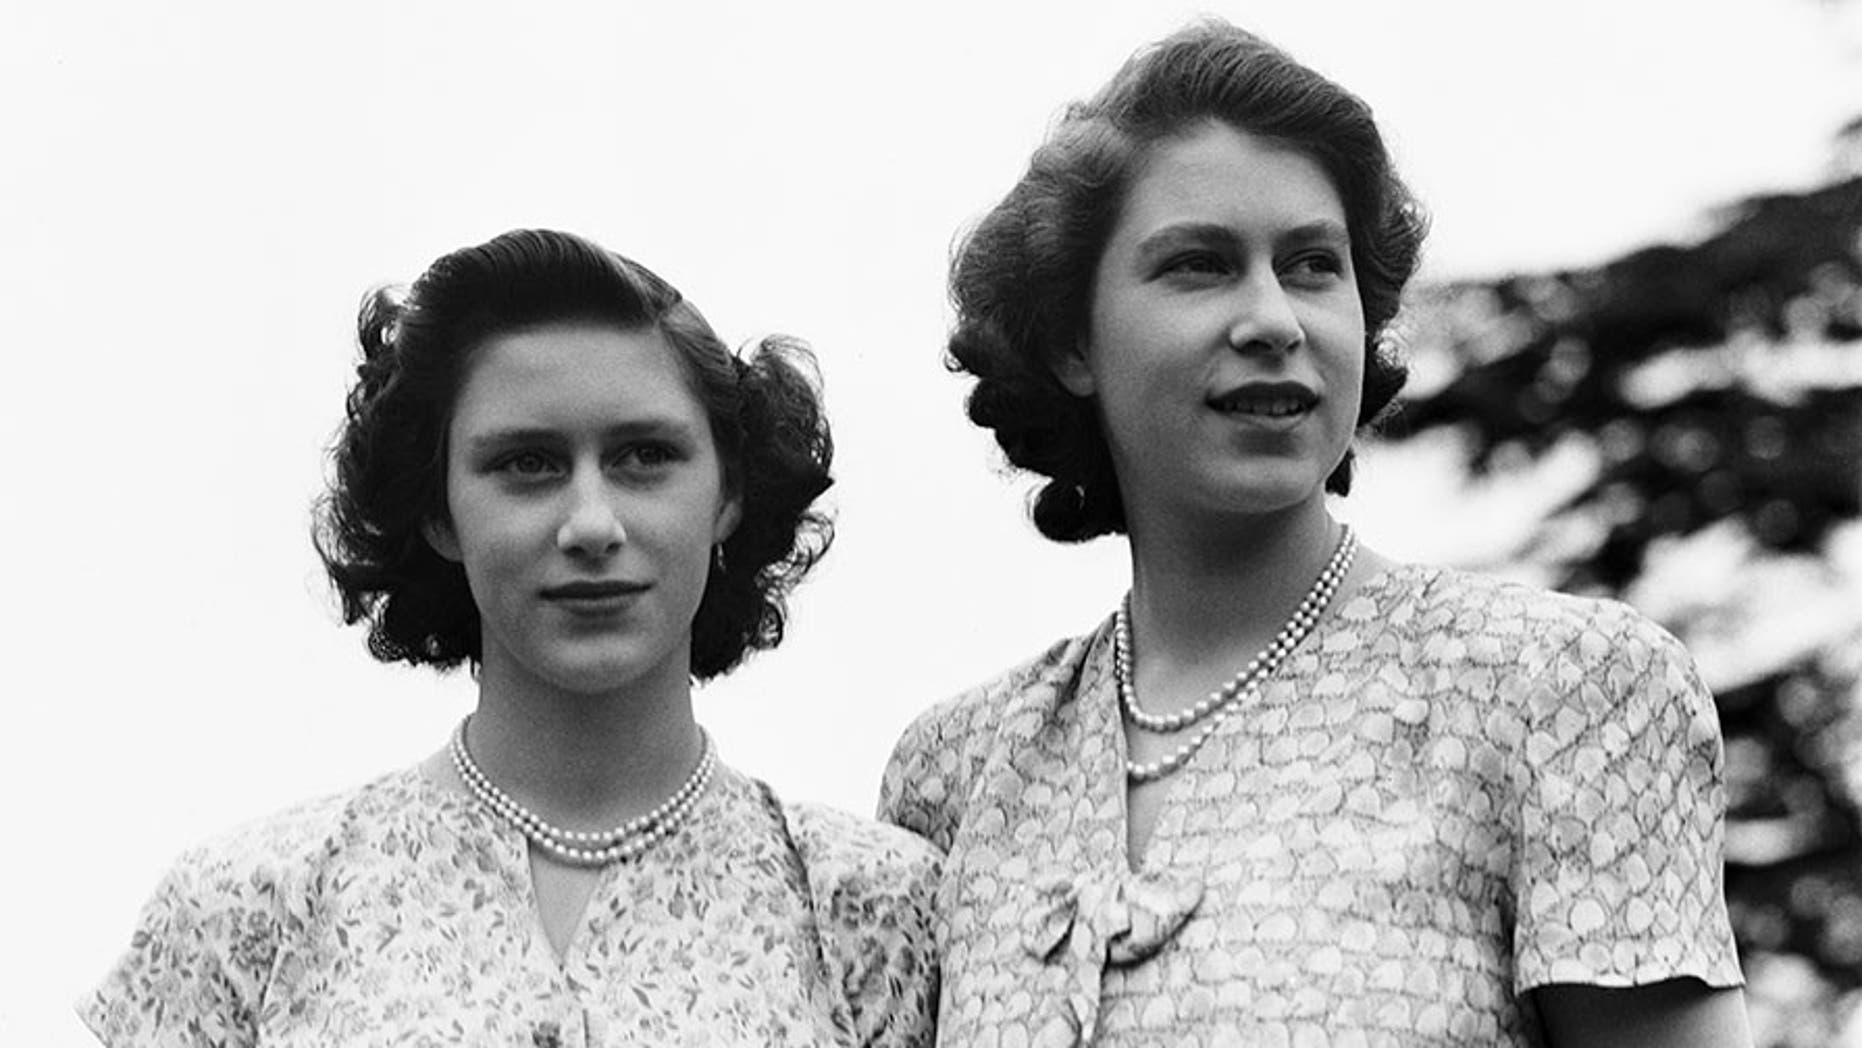 Queen Elizabeth 'always protected' her sister Princess Margaret despite media scrutiny, royal butler says